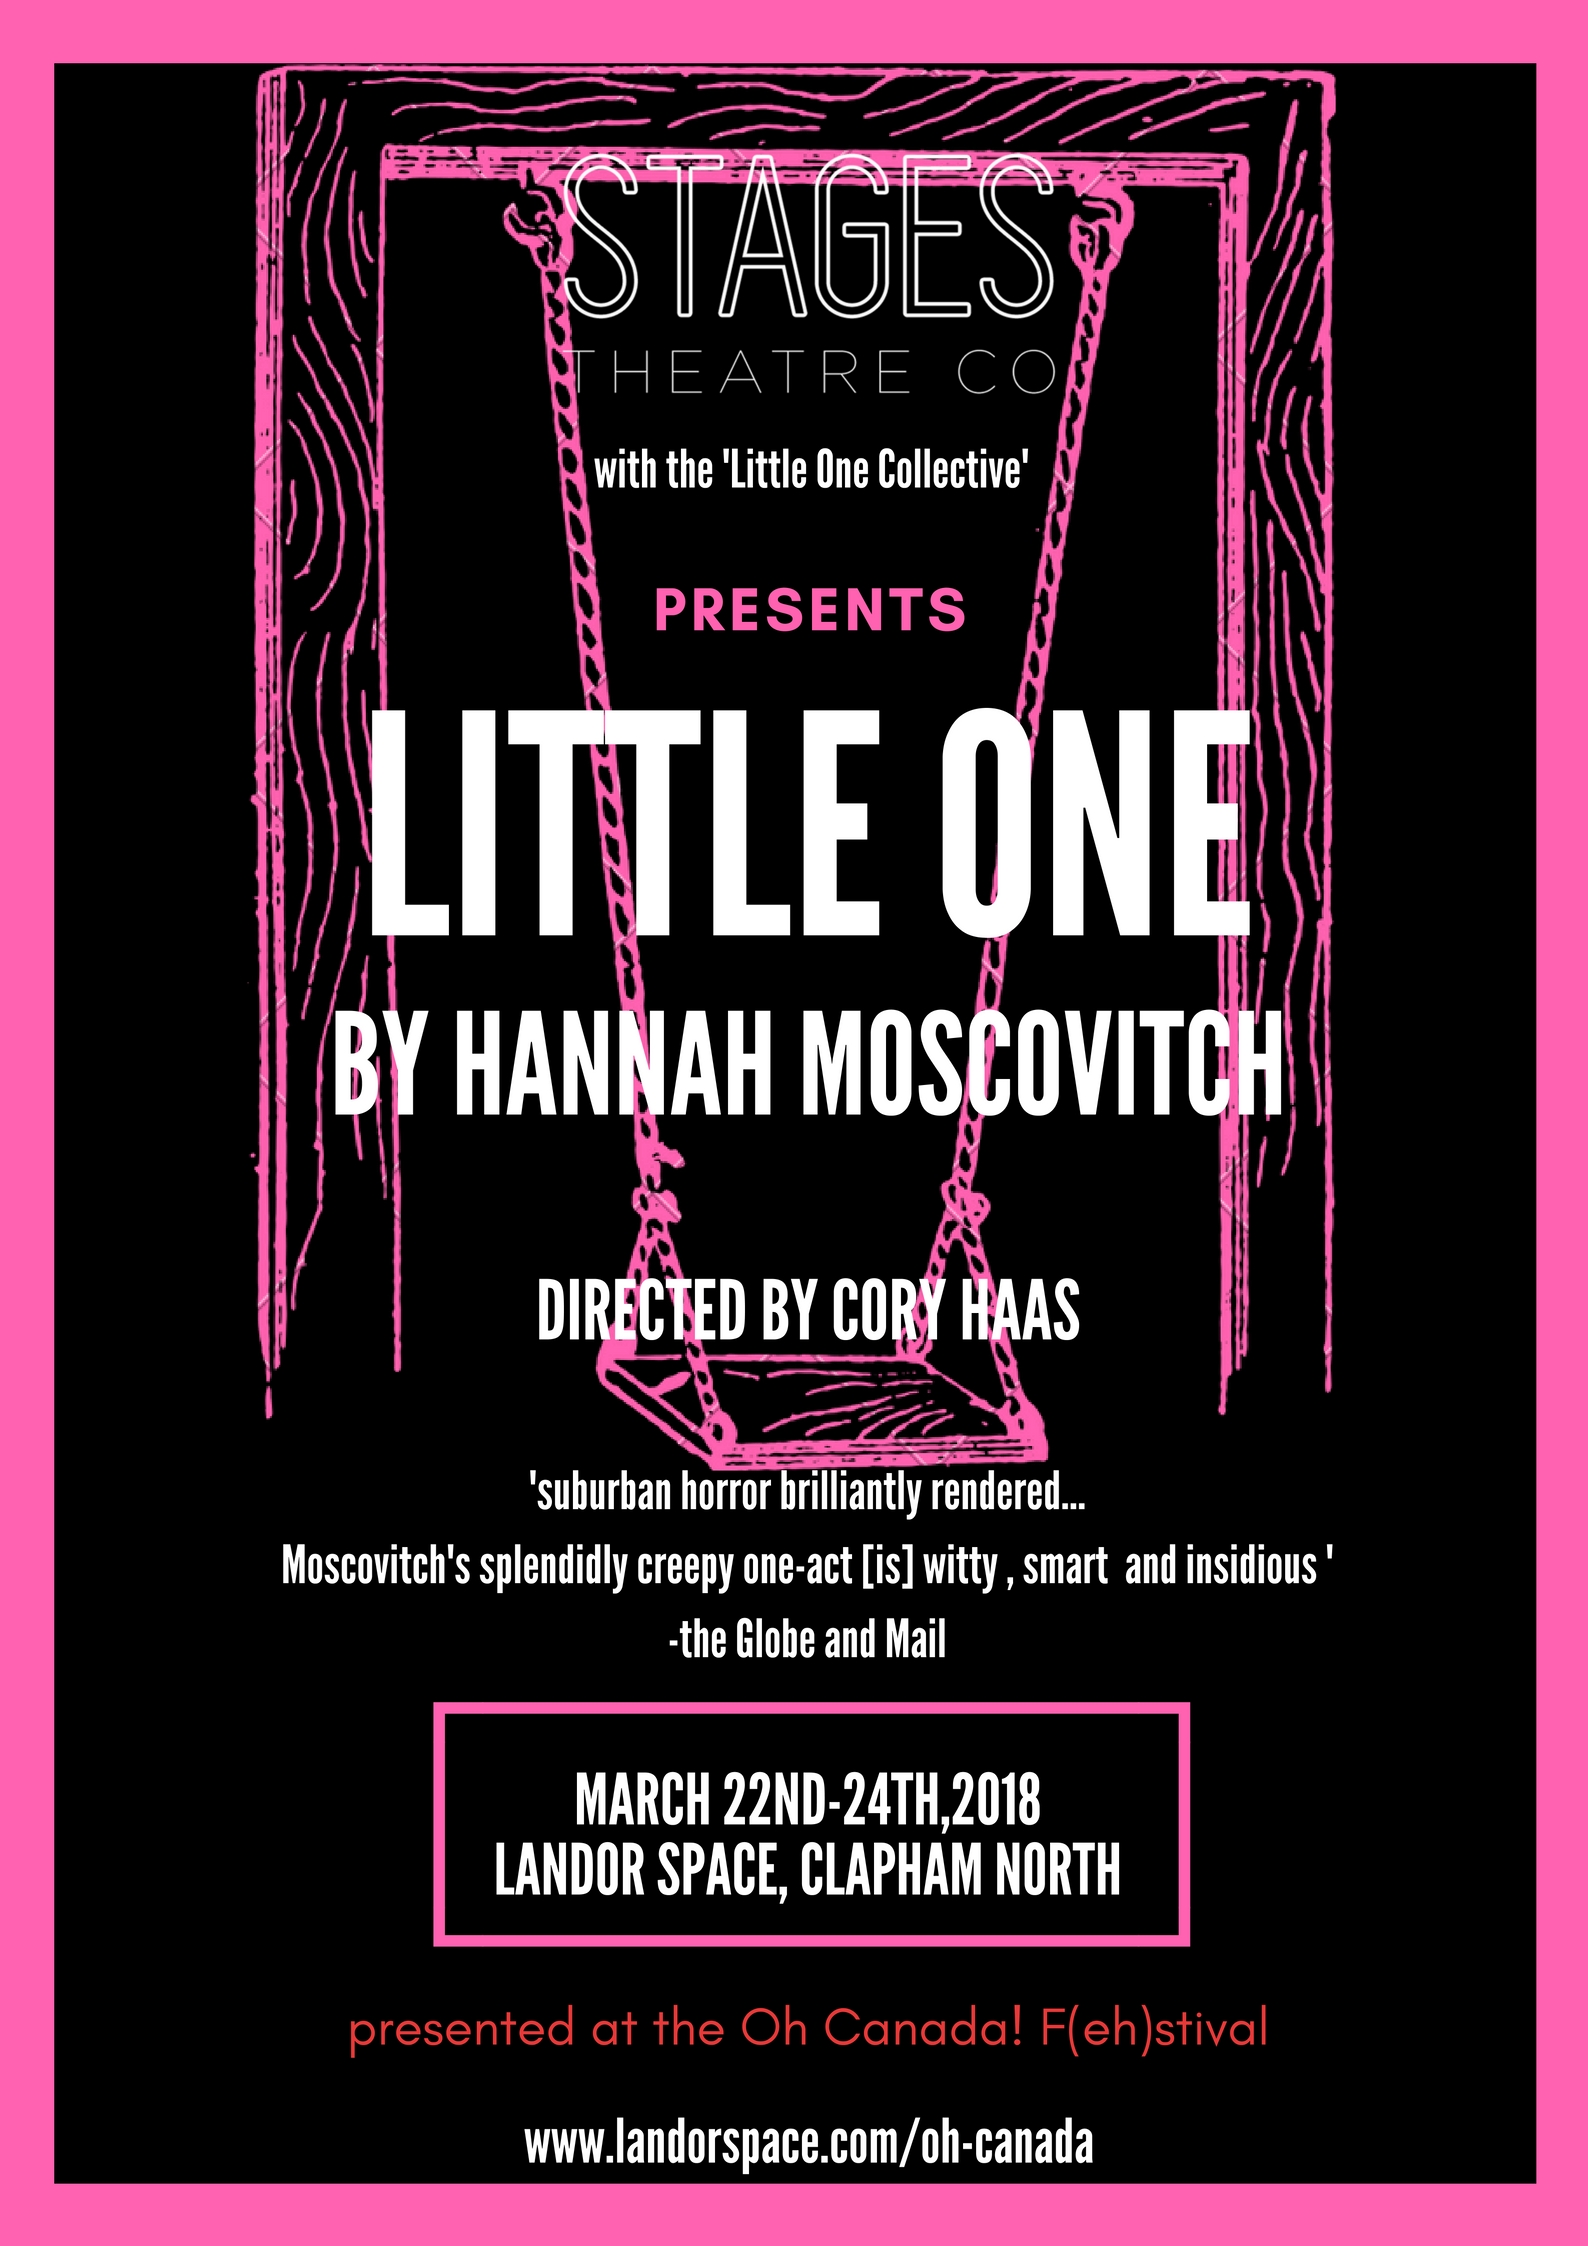 LITTLE ONE - Written by Hannah Moscovitch and directed by Cory Haas– Thursday March 22nd - Saturday March 24th 2018 @ 7pmStandard £16 - Concessions £14The F(eh)stival concludes with our main event, a three-night run of Little One. A chilling psychological thriller,Little Oneis the haunting story of adopted siblings Aaron and Claire – one the definition of normal, the other deeply disturbed and unpredictable – and the strange lives of their neighbours, a man and his mail-order bride. Hannah Moscovitch is a Siminovitch Prize and Govenor General's Award nominee, her plays have received national recognition and has been called 'the wunderkind of Canadian theatre' by CBC Radio.